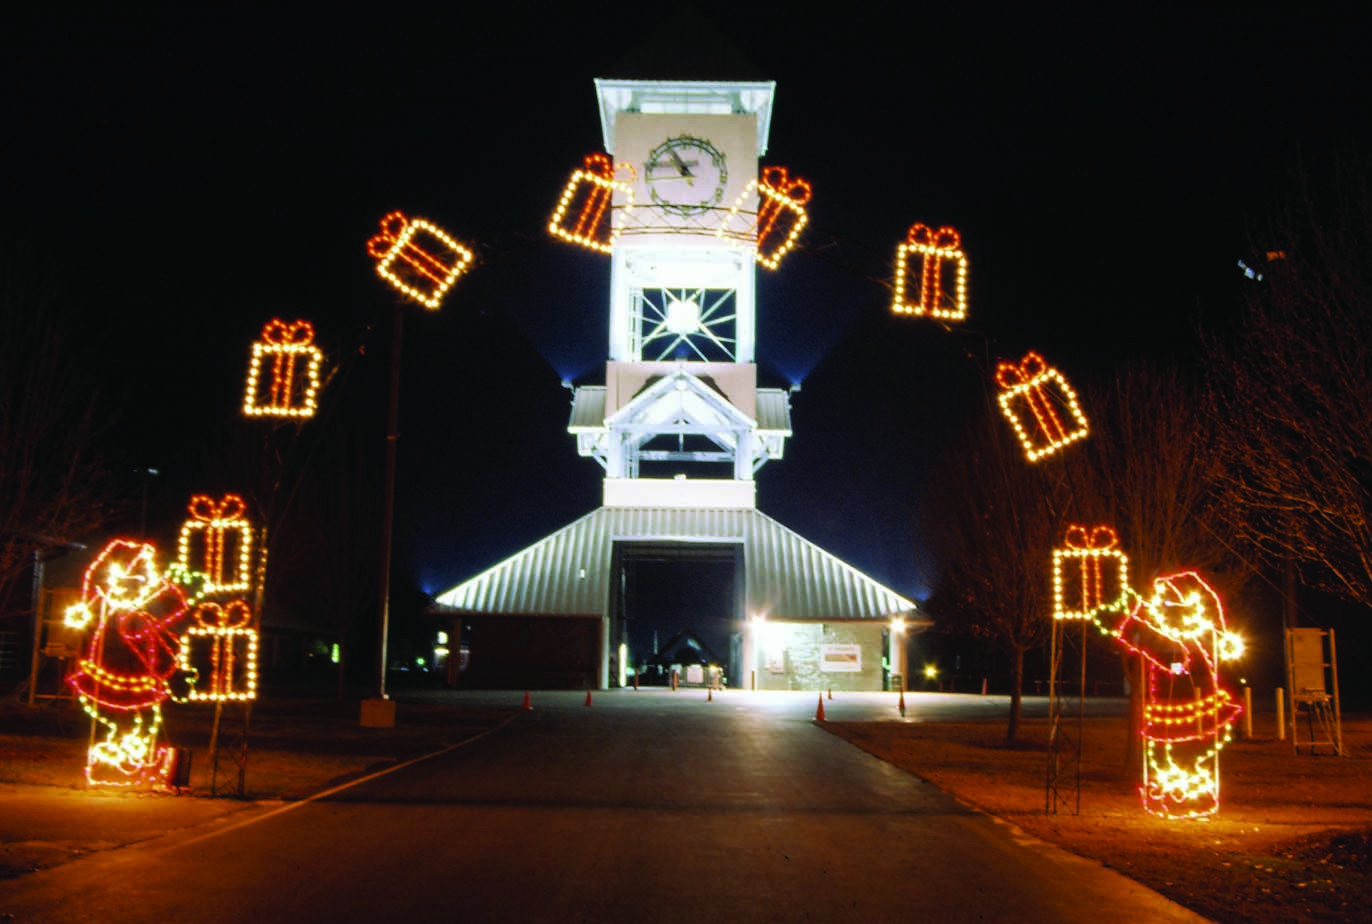 Animated Outdoor Christmas Decorations  mercial Lighted Arches for Drive Thru Parks and City